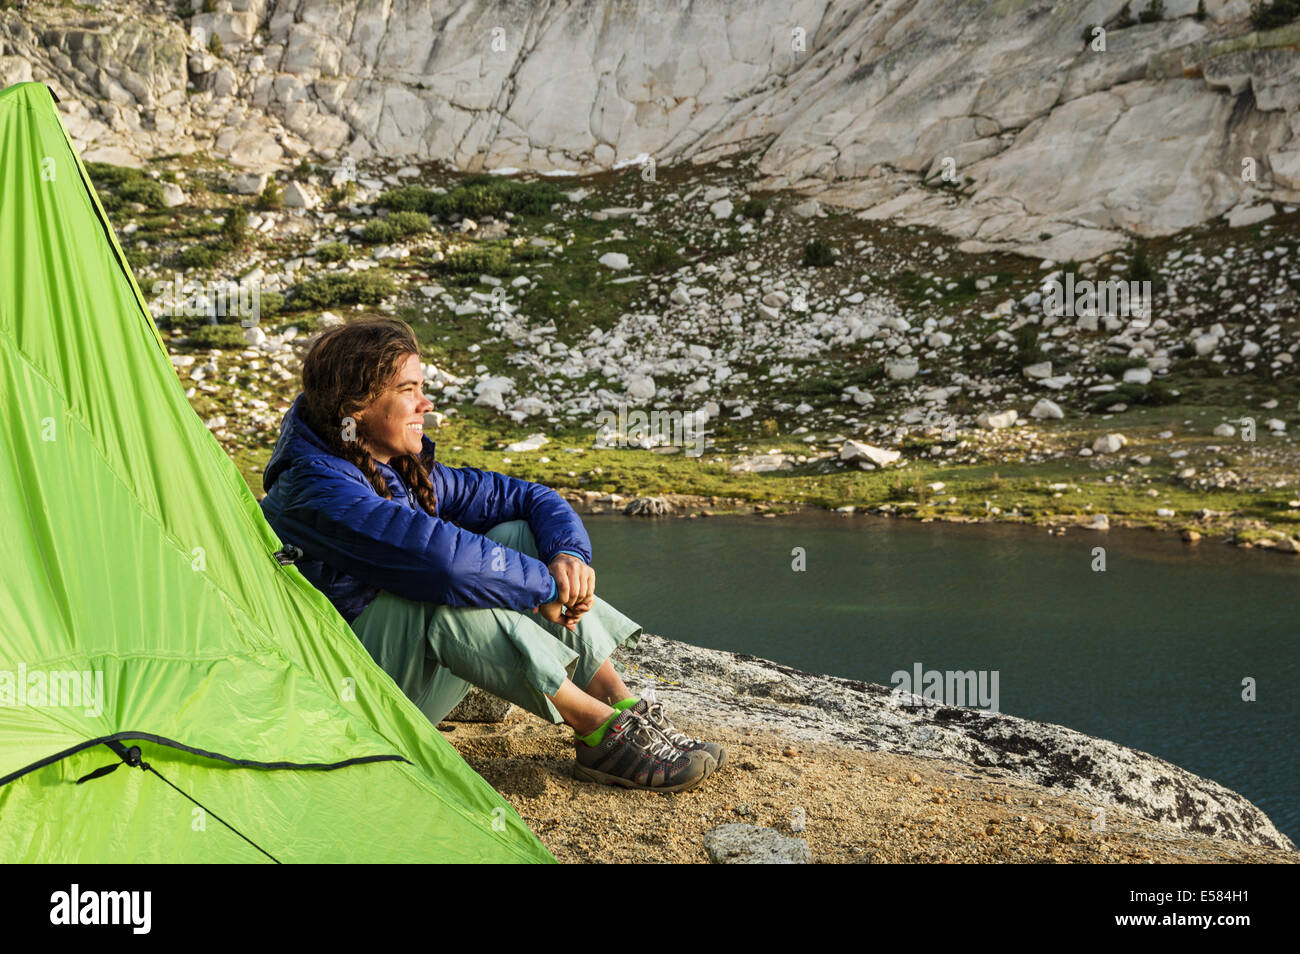 woman backpacking camper sitting next to her tent watching the sunset by Evolution Lake - Stock Image